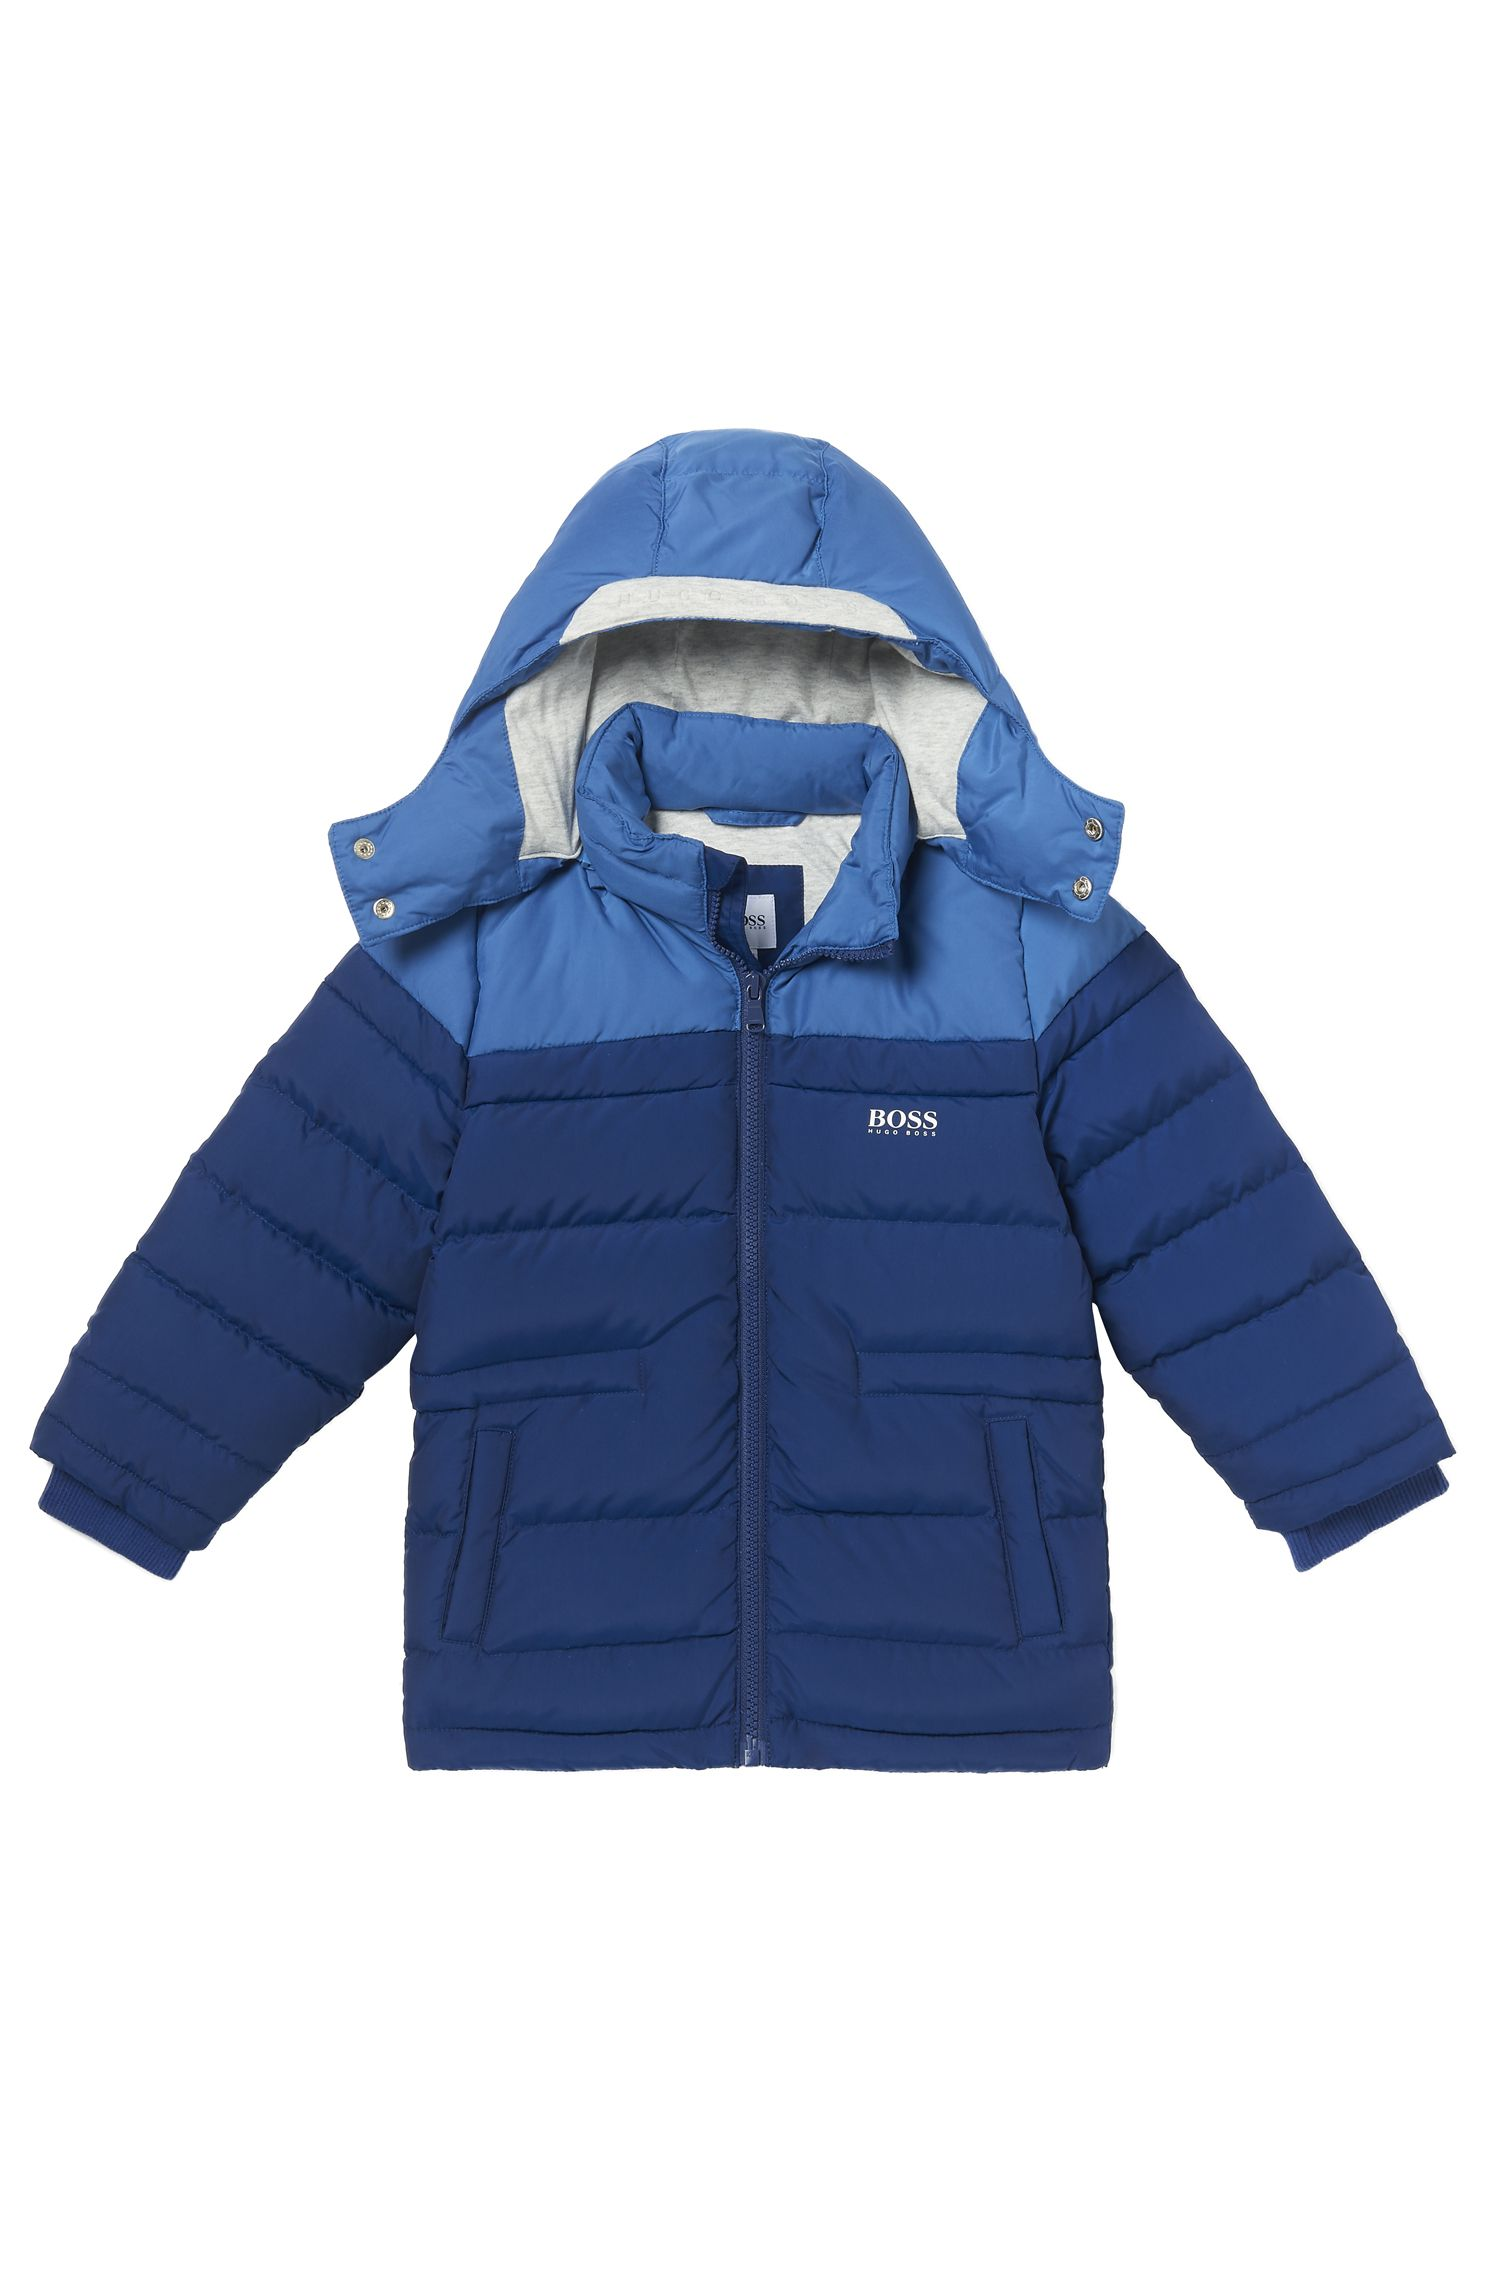 'J26285' | Boys Nylon Quilted Puffer Coat, Removable Hood